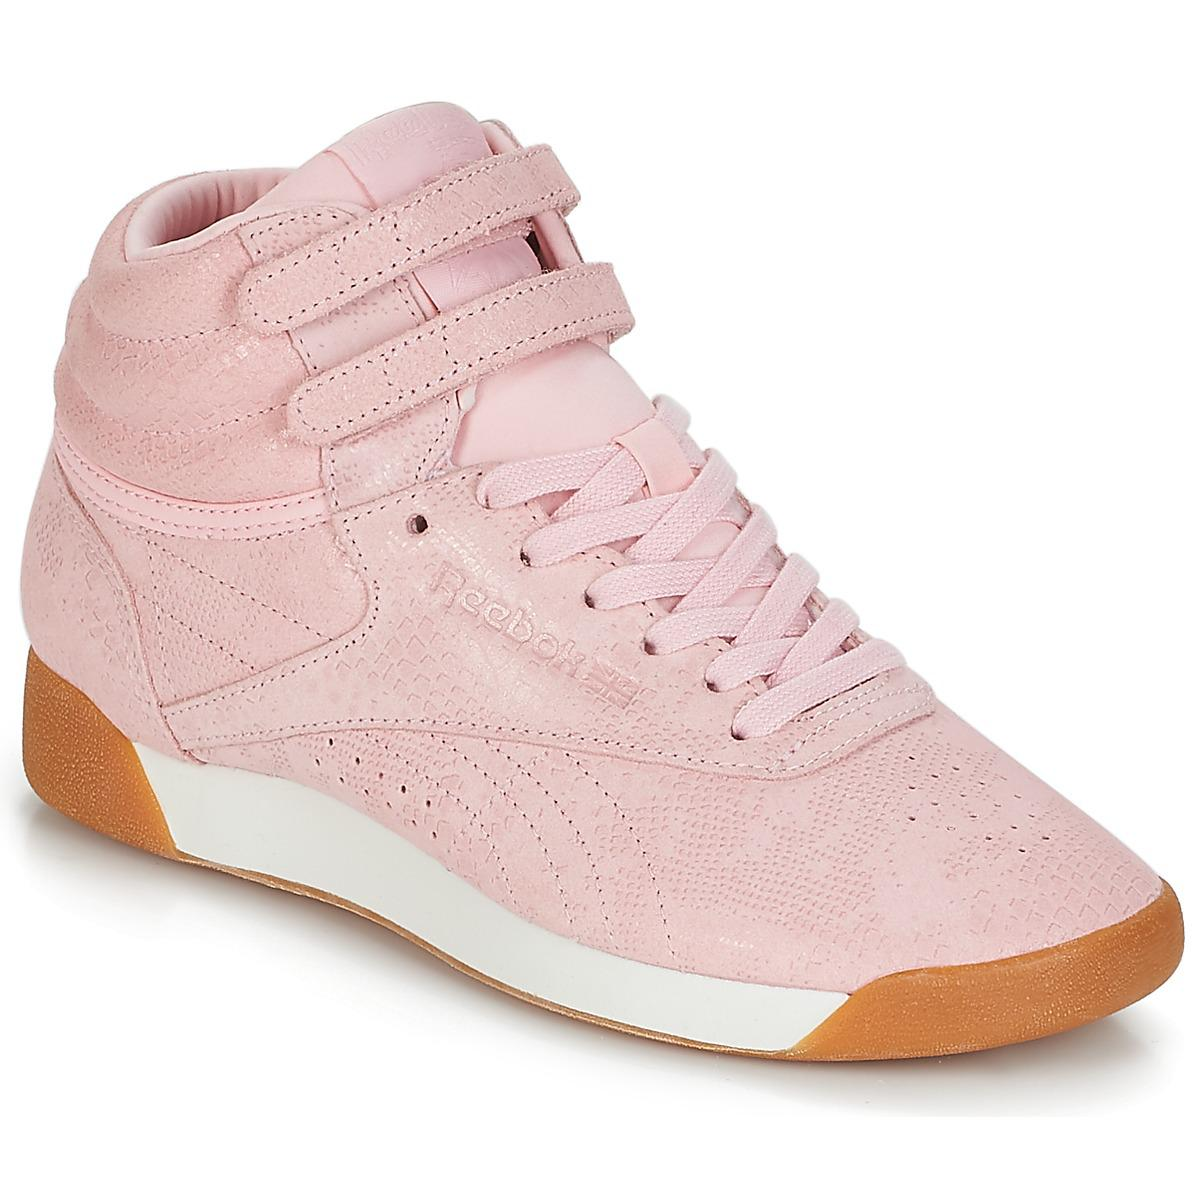 7e28a69d5464 Reebok Freestyle Hi Shoes (high-top Trainers) in Pink - Lyst